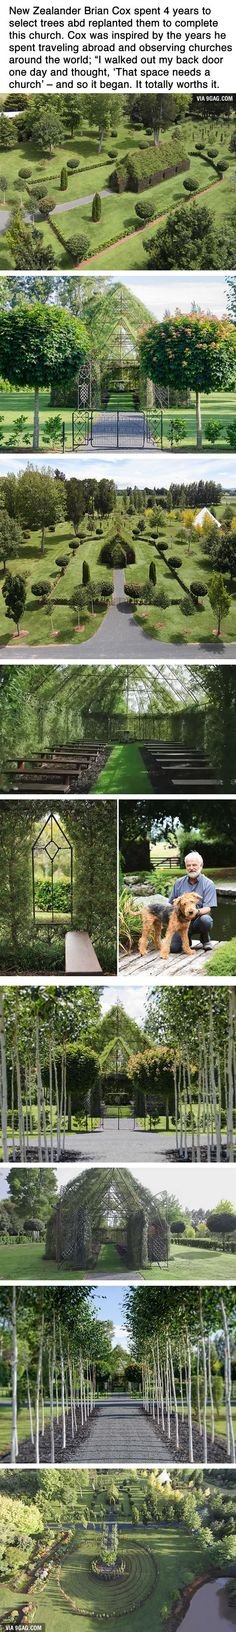 This Guy Spent 4 Years Growing A Church From Trees